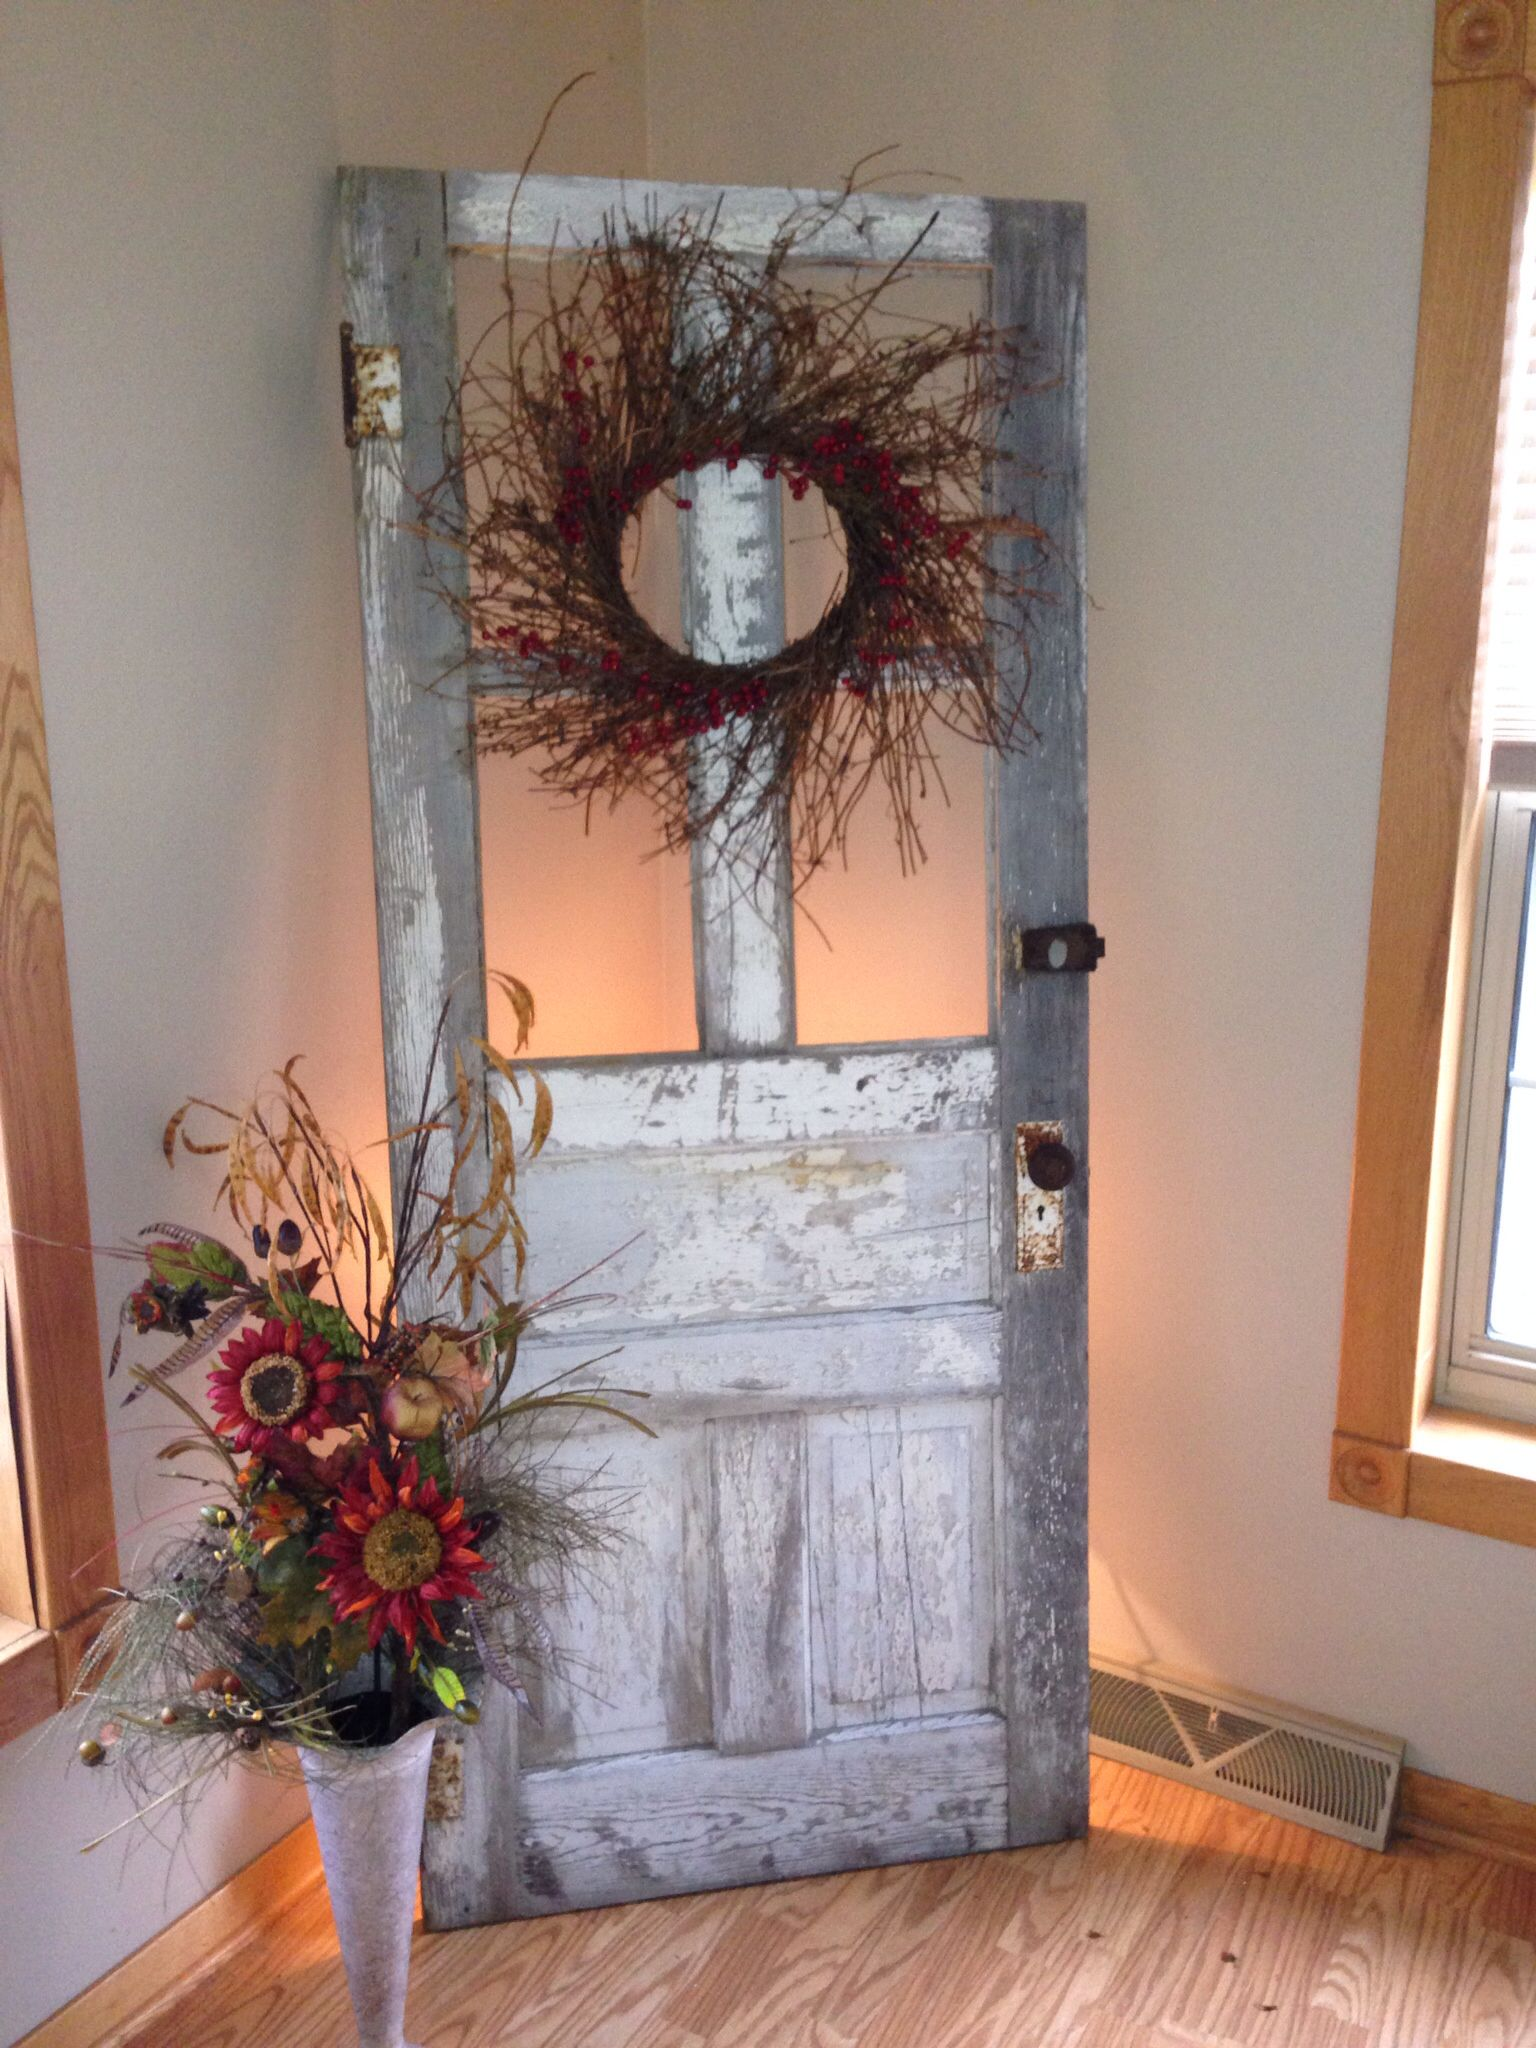 Julie's old door decor | Decor | Old door decor, Vintage ...